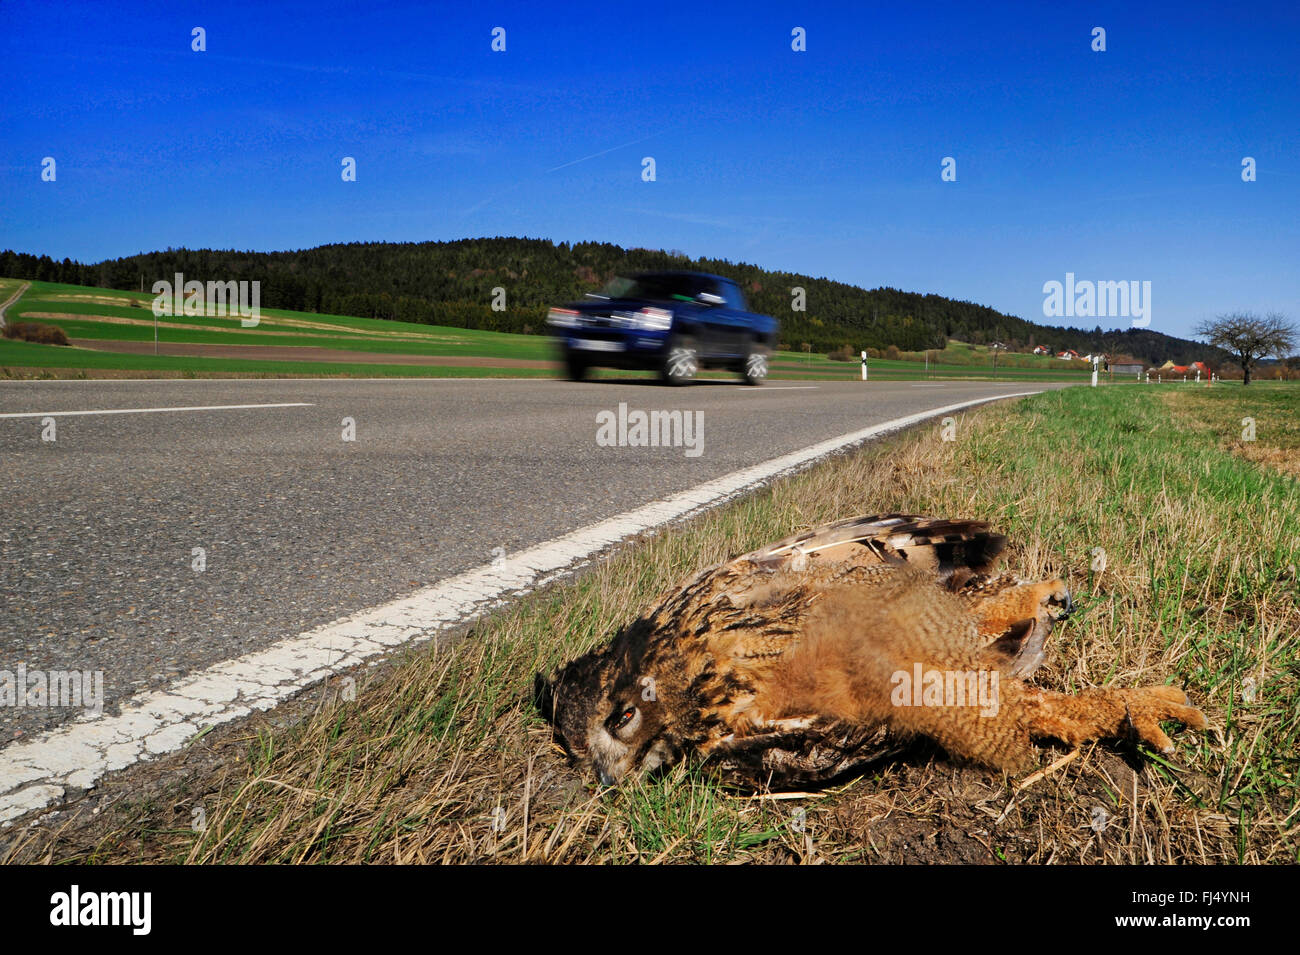 northern eagle owl (Bubo bubo), dead eagle owl on the roadside after the collision with a car, Germany, Oberndorf - Stock Image